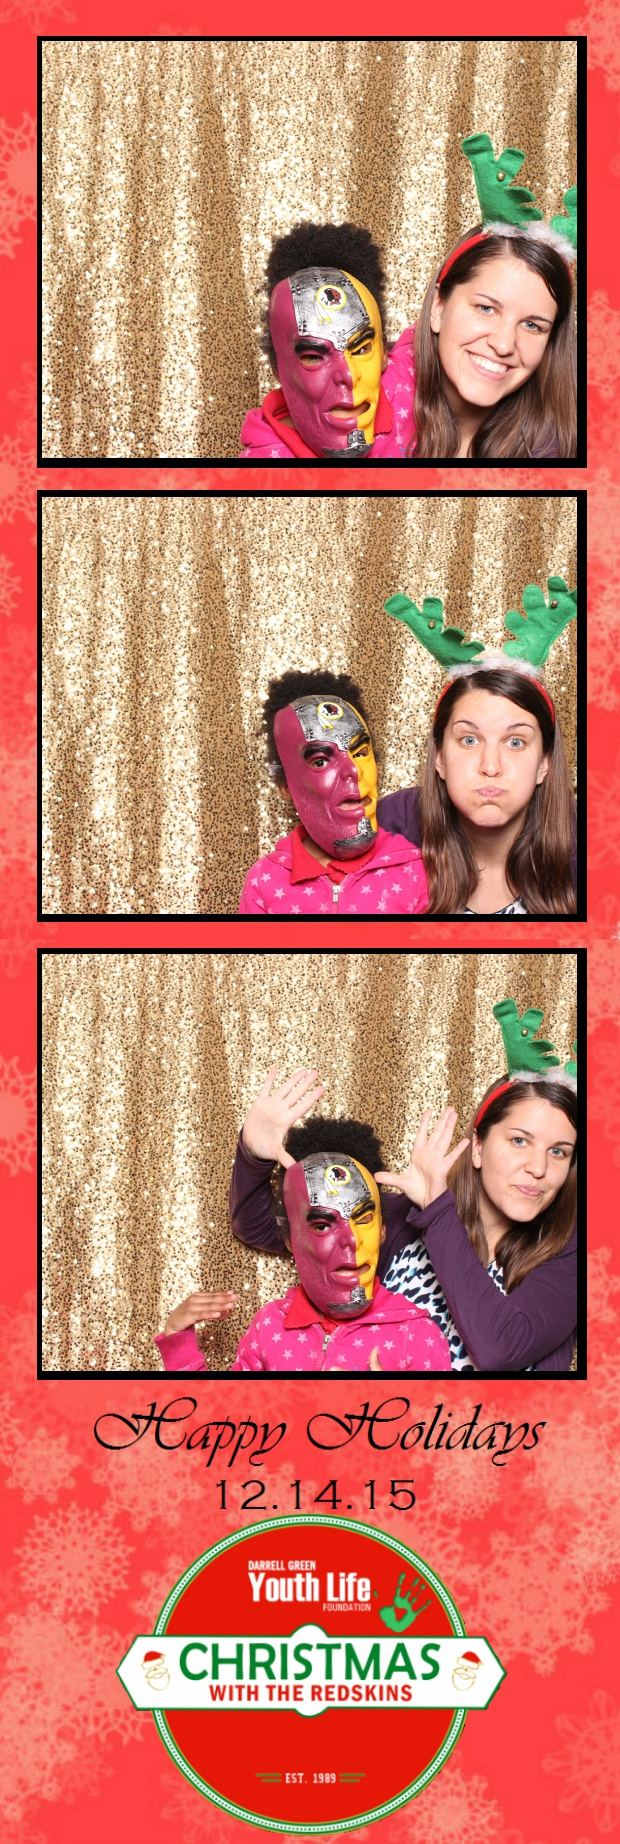 Guest House Events Photo Booth DGYLF Strips (48).jpg